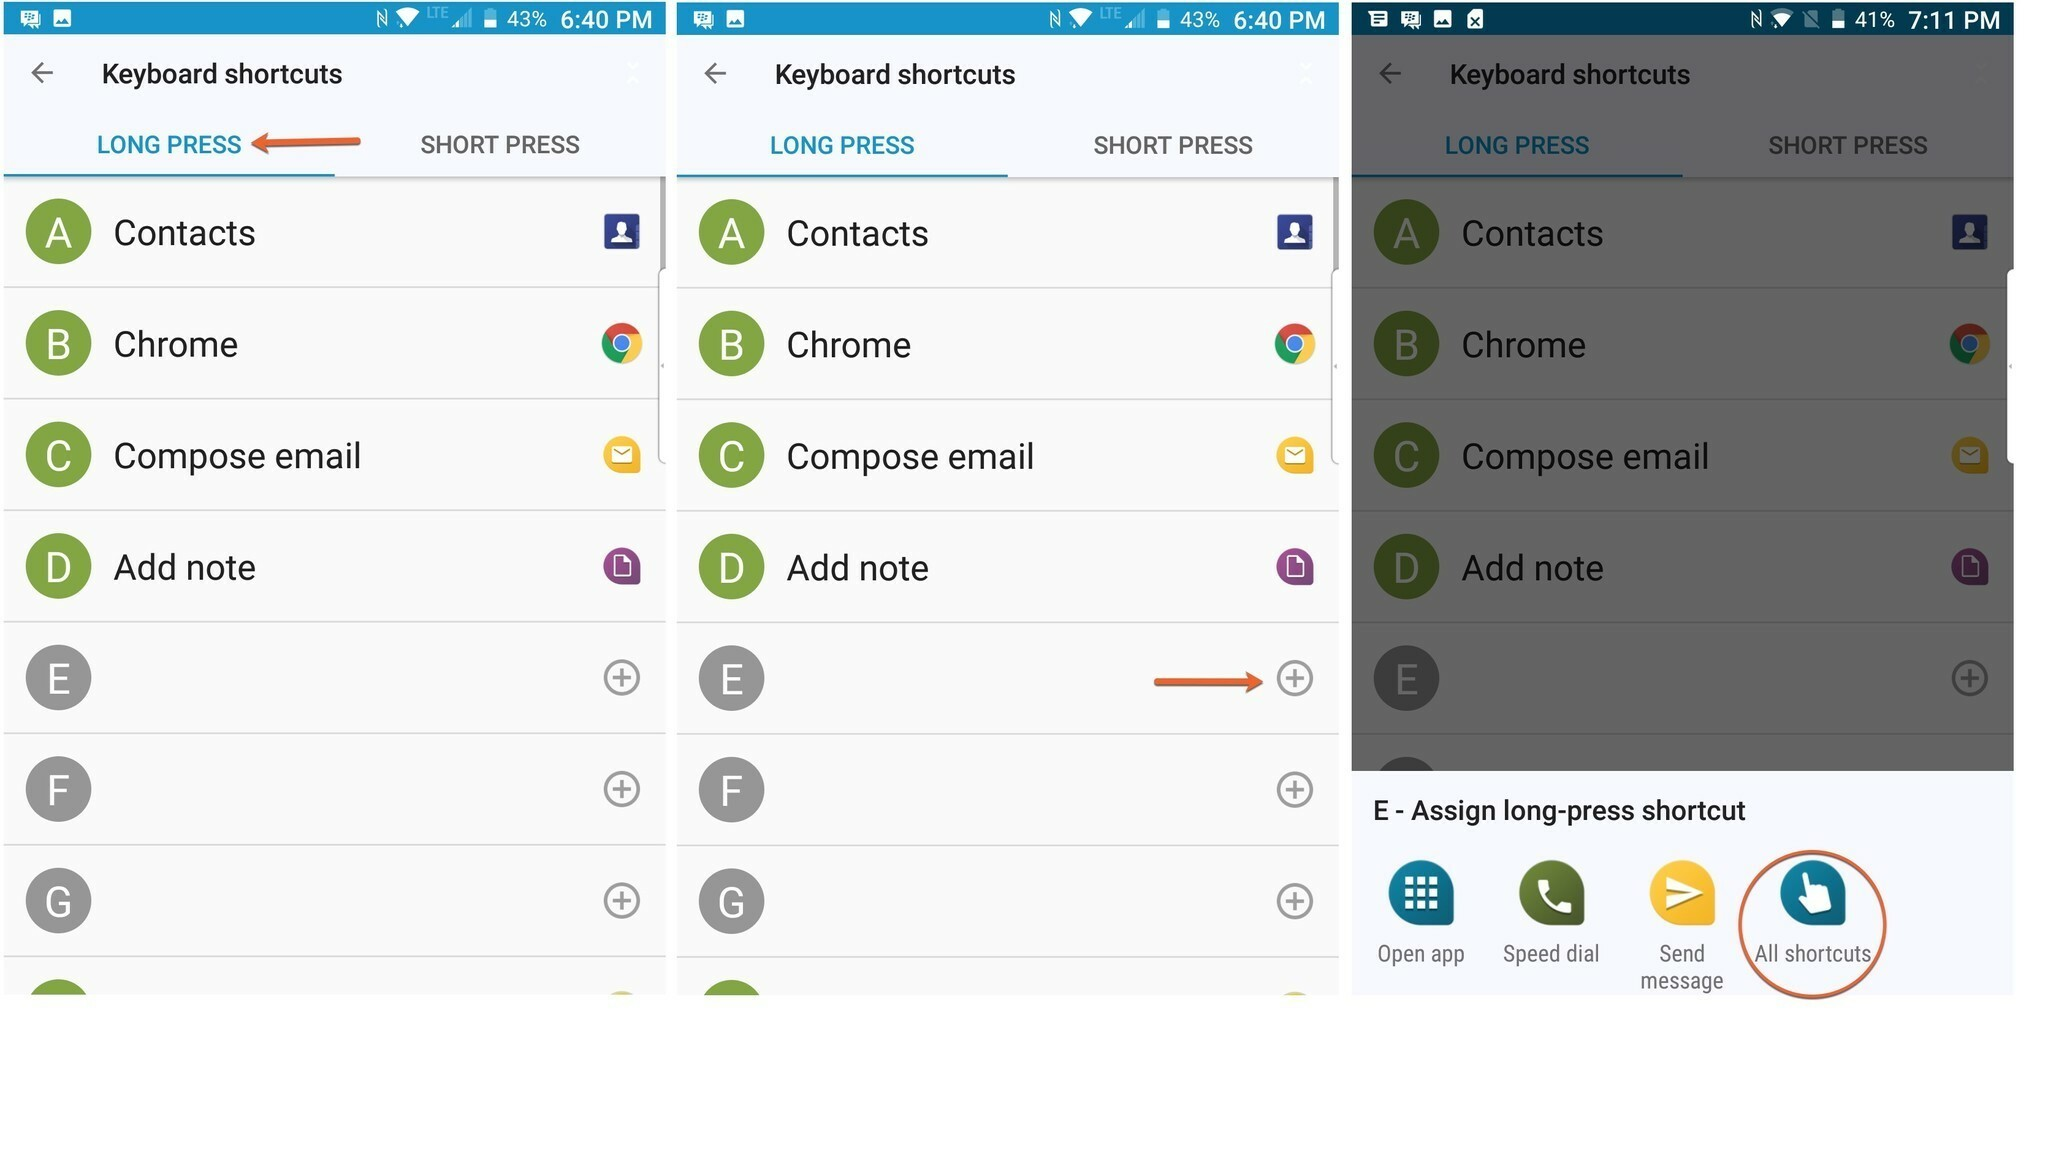 How to set up keyboard shortcuts on the BlackBerry KEYone